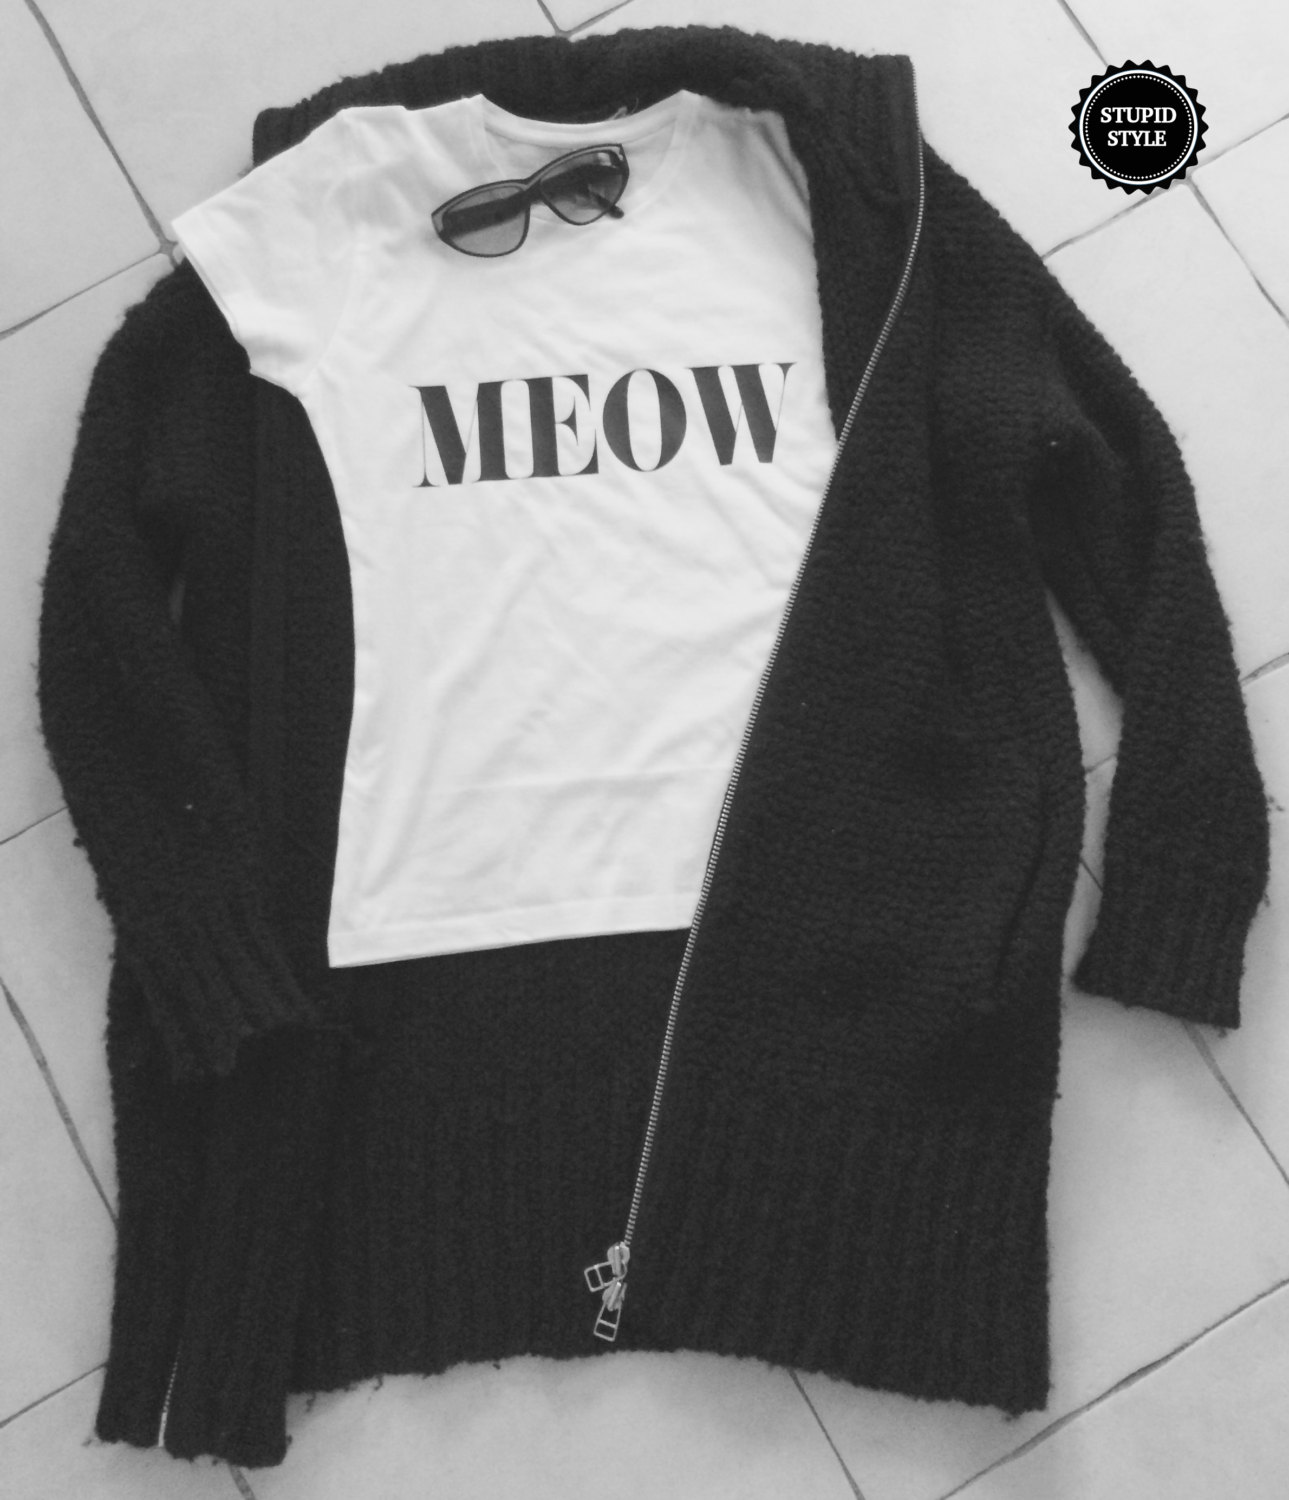 ee2049d5b Meow white t-shirts for women tshirts gifts t-shirt tops girls tumblr funny  ...